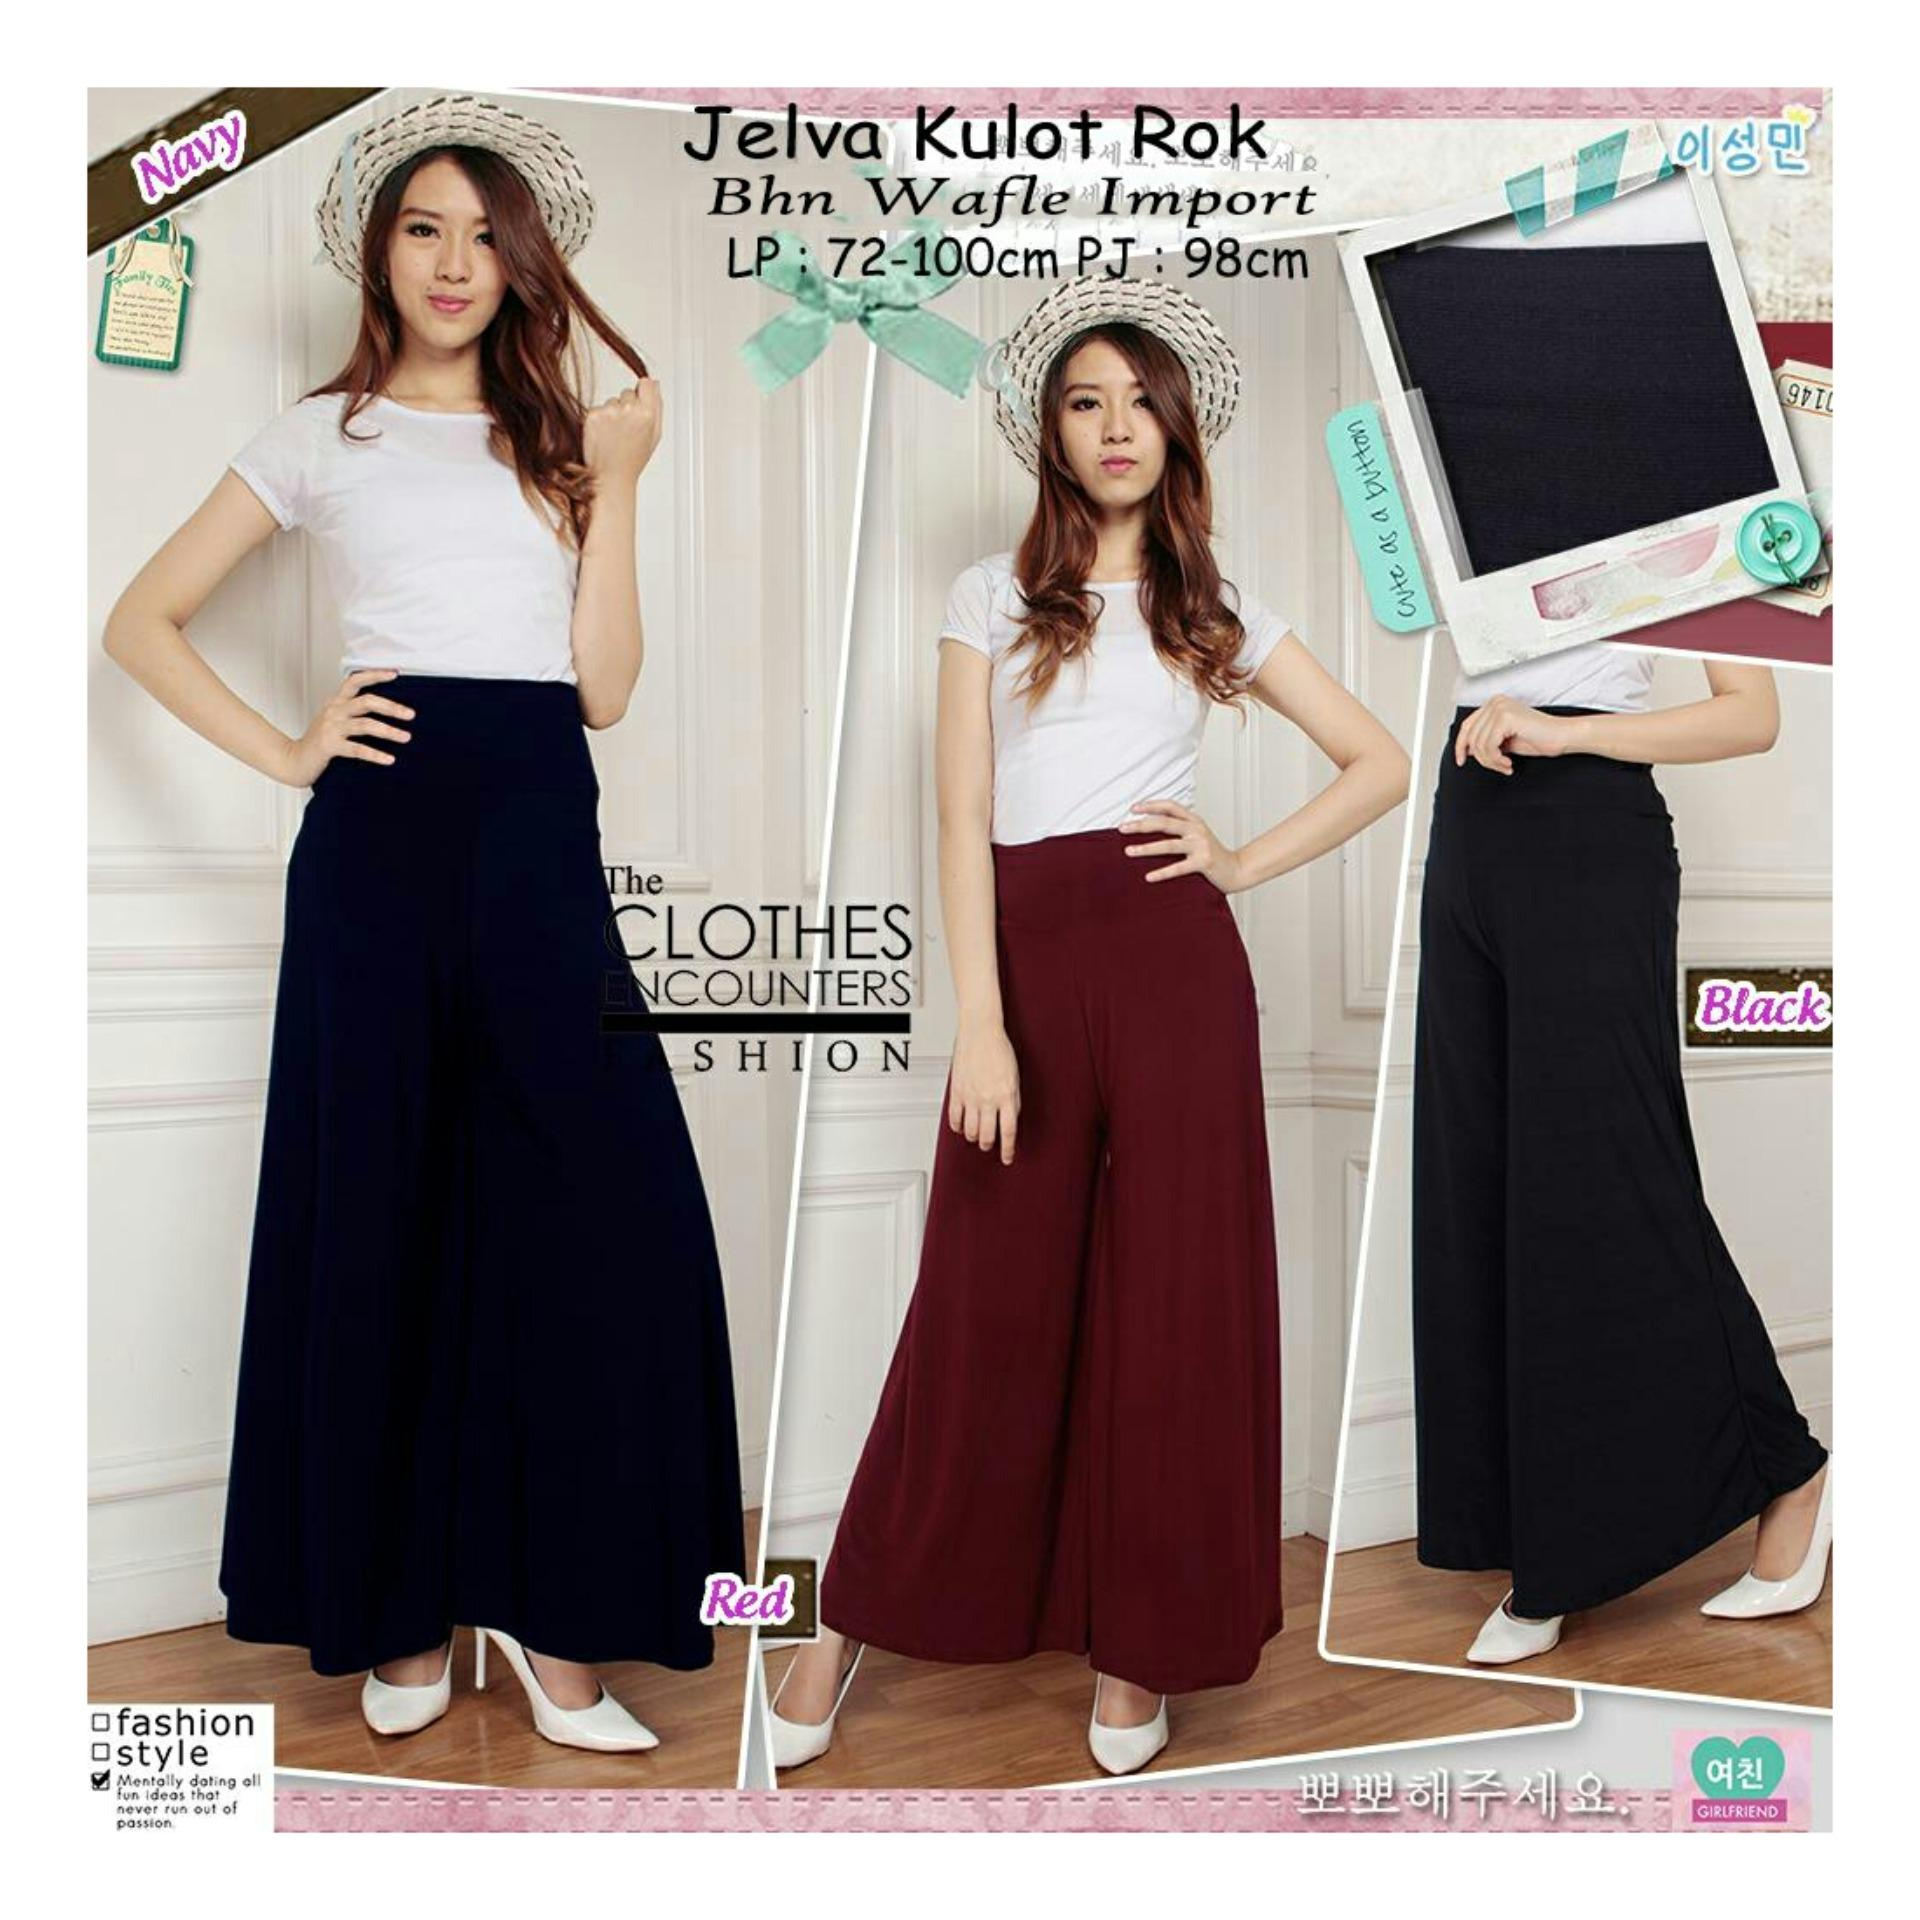 ... jumbo long pant Leondra. Source · Jfashion Celana Kulot Panjang Wanita Dewasa Bahan Plisket Jennie Source · Sb Collection Celana Kulot Rok